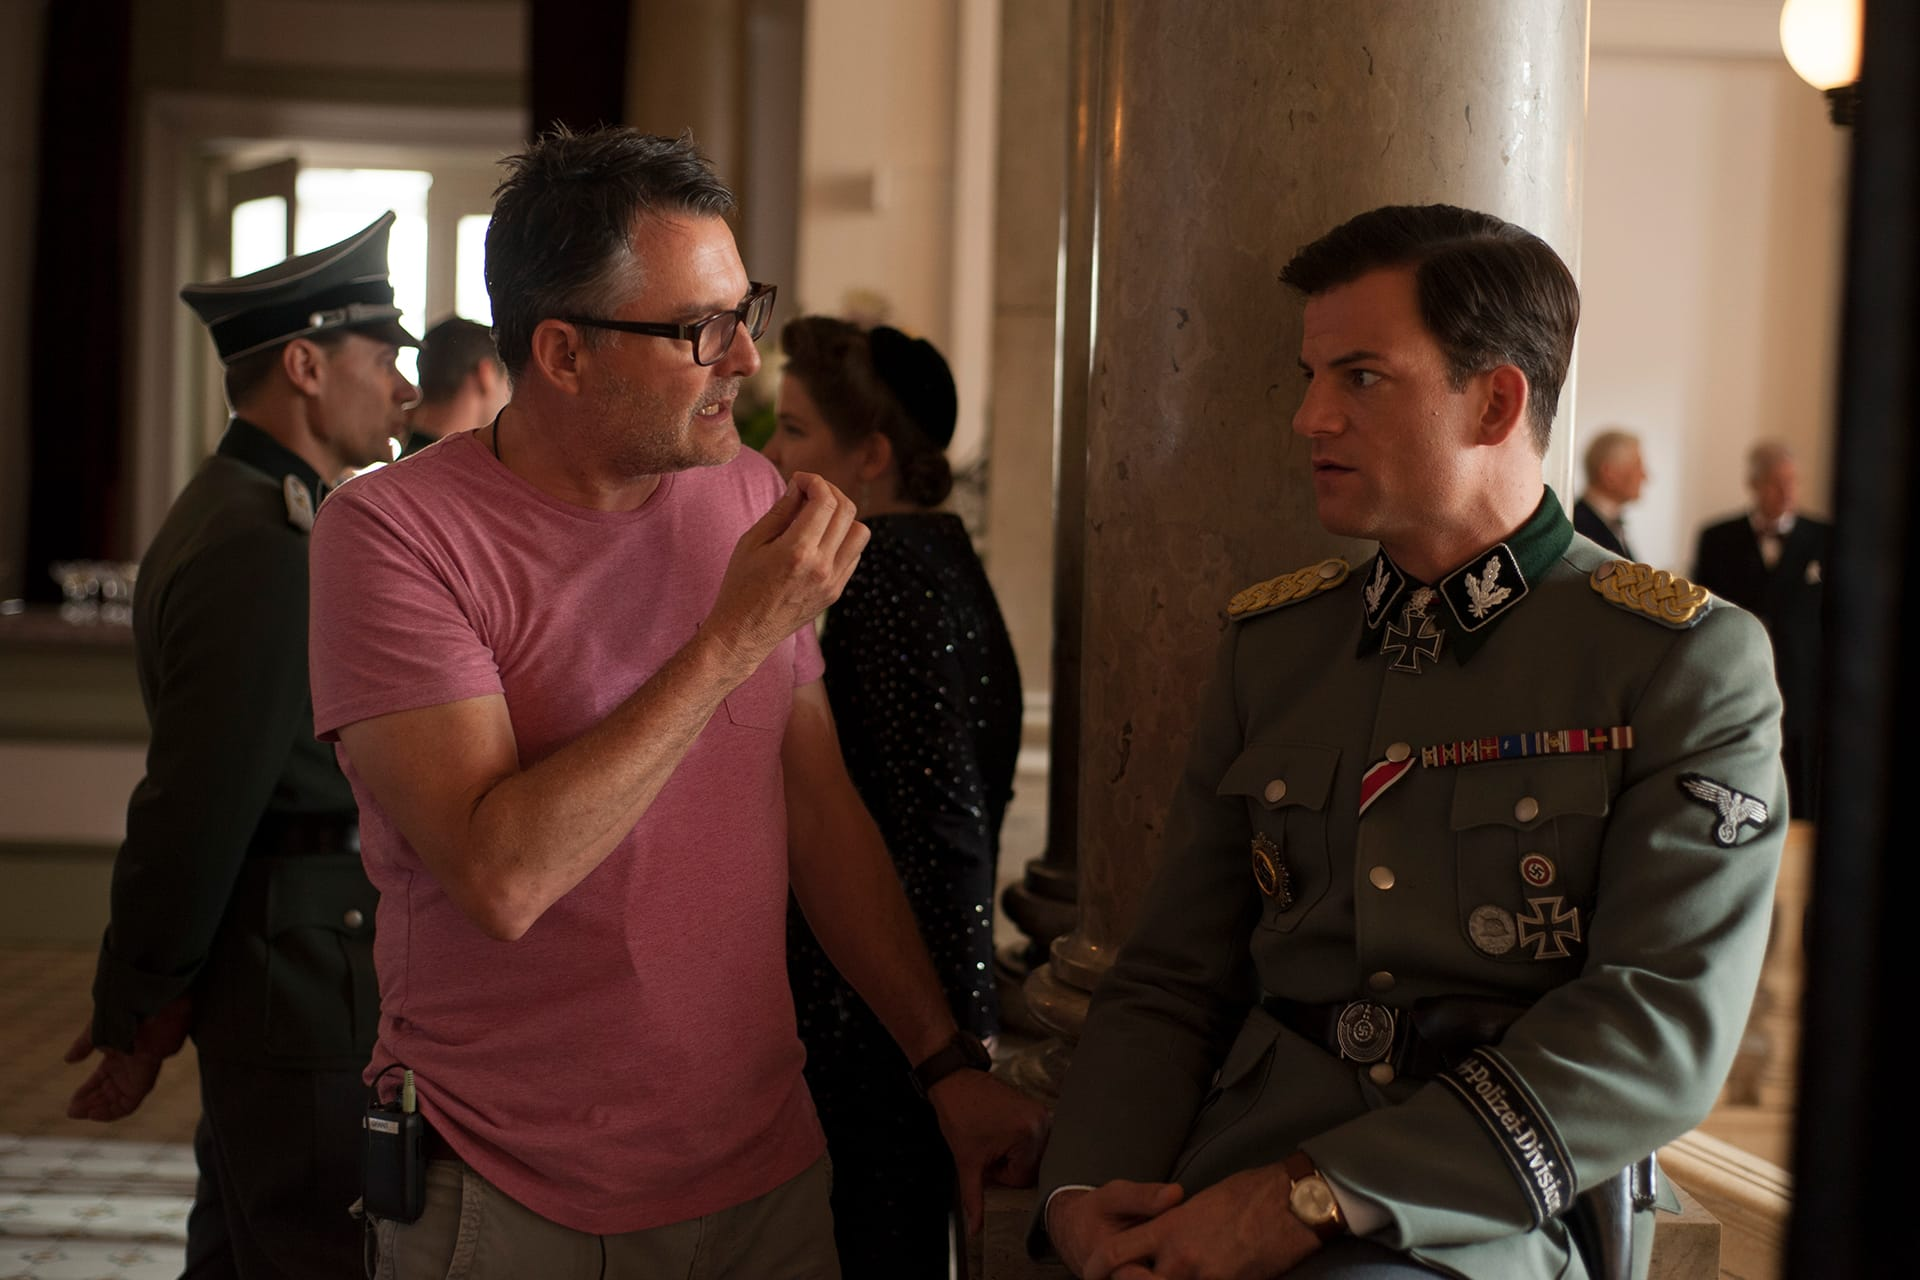 Director Grant Harvey with Torben Liebrecht (Faber) on the set of X Company Season 3 shooting in Budapest, Hungary.